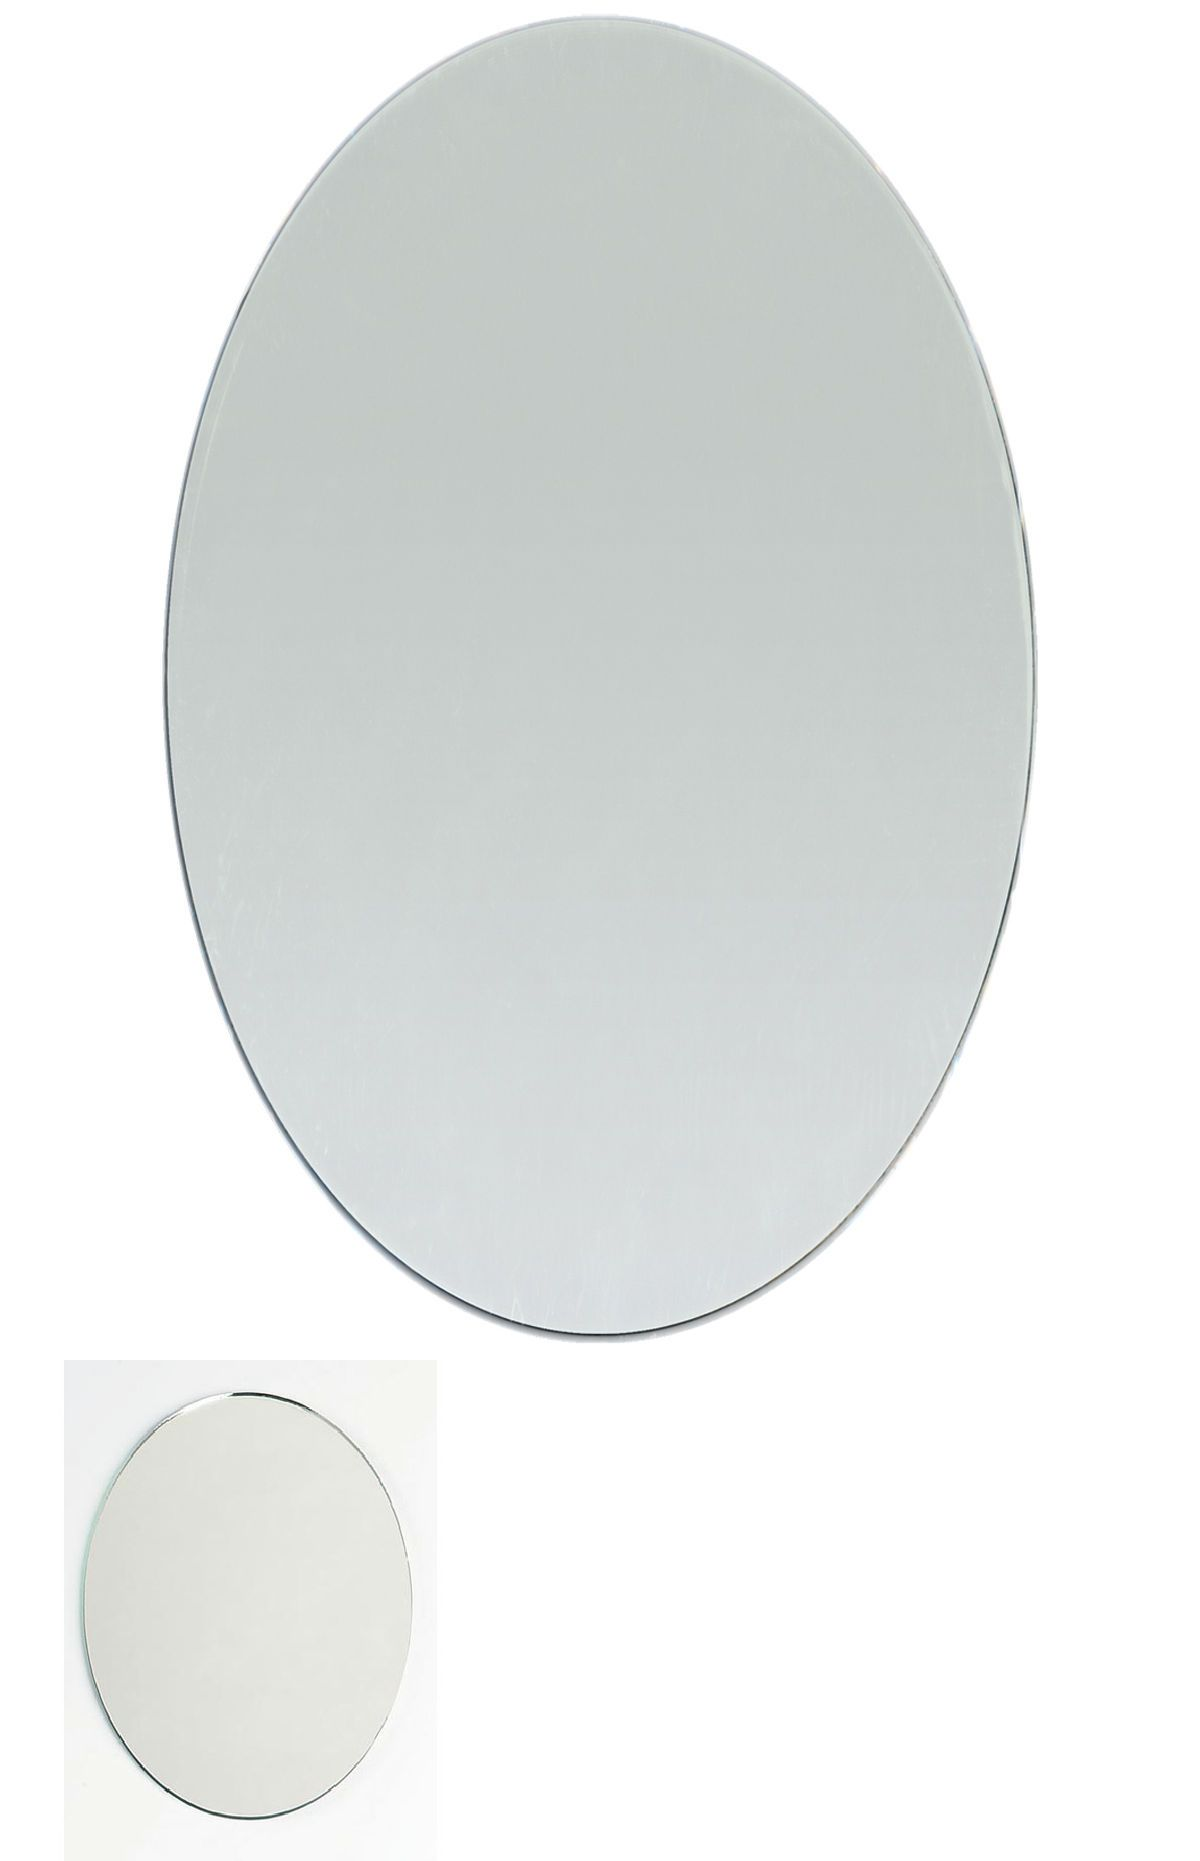 Other Craft Wholesale Lots 45077 6 X 8 Inch Glass Craft Oval Mirrors Bulk 100 Pieces Oval Mirror Mosaic Tiles Mosaic Tile Mirror Mirror Mosaic Mosaic Tiles